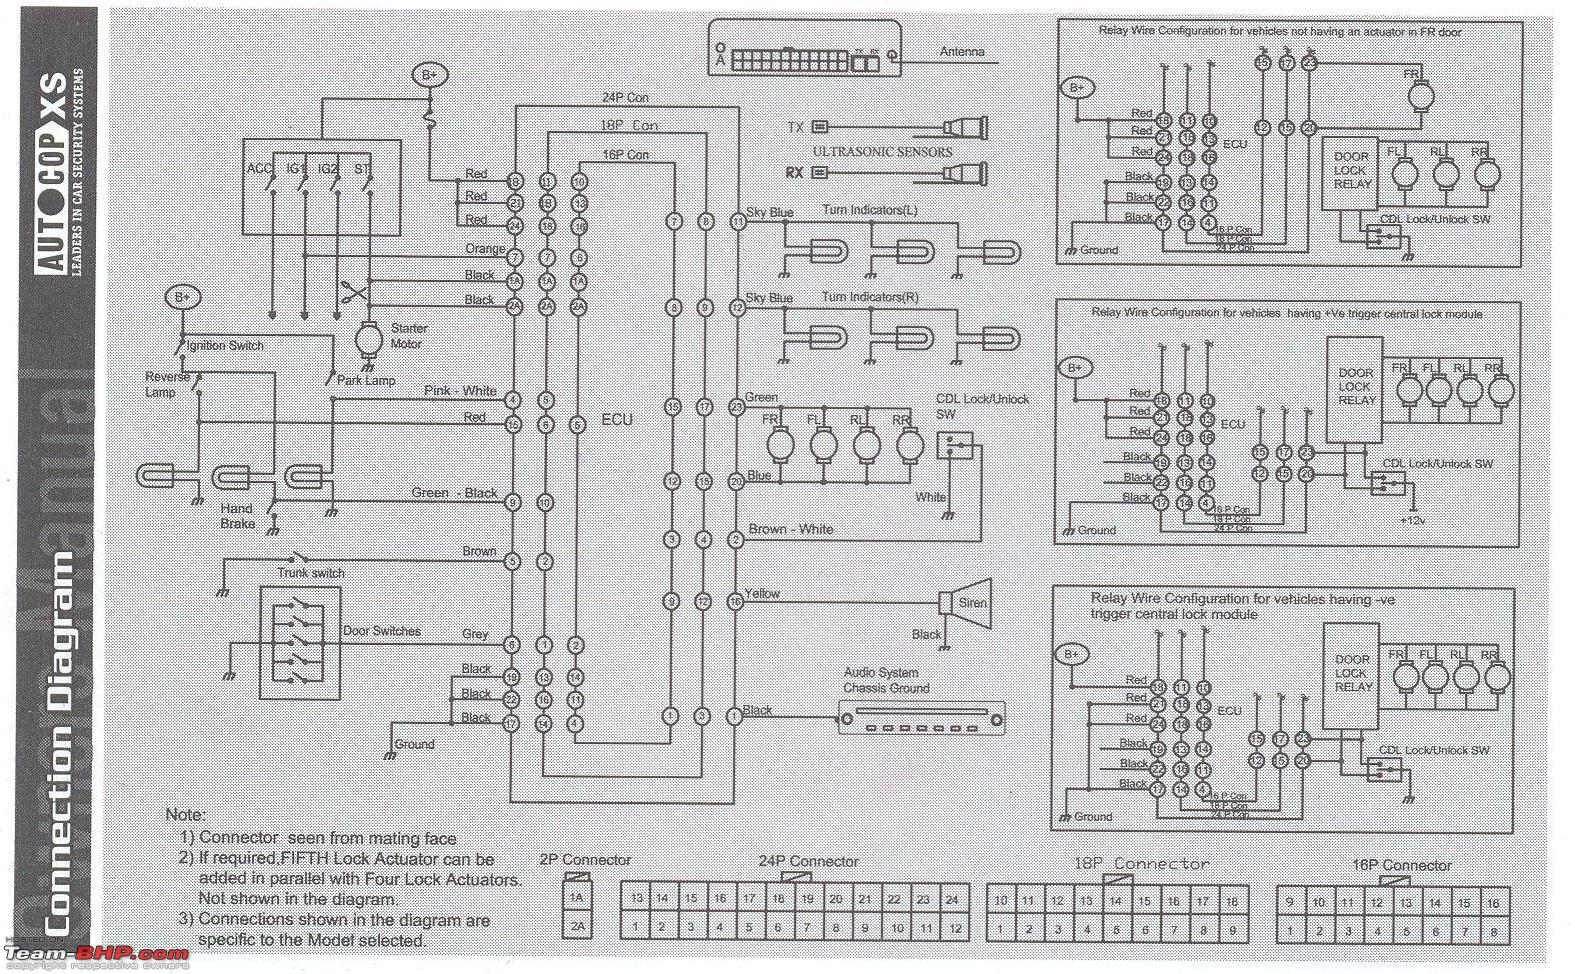 880602d1328028546 autocop xs manual wiring diagram image 5 autocop xs manual wiring diagram team bhp maruti alto wiring diagram pdf at alyssarenee.co